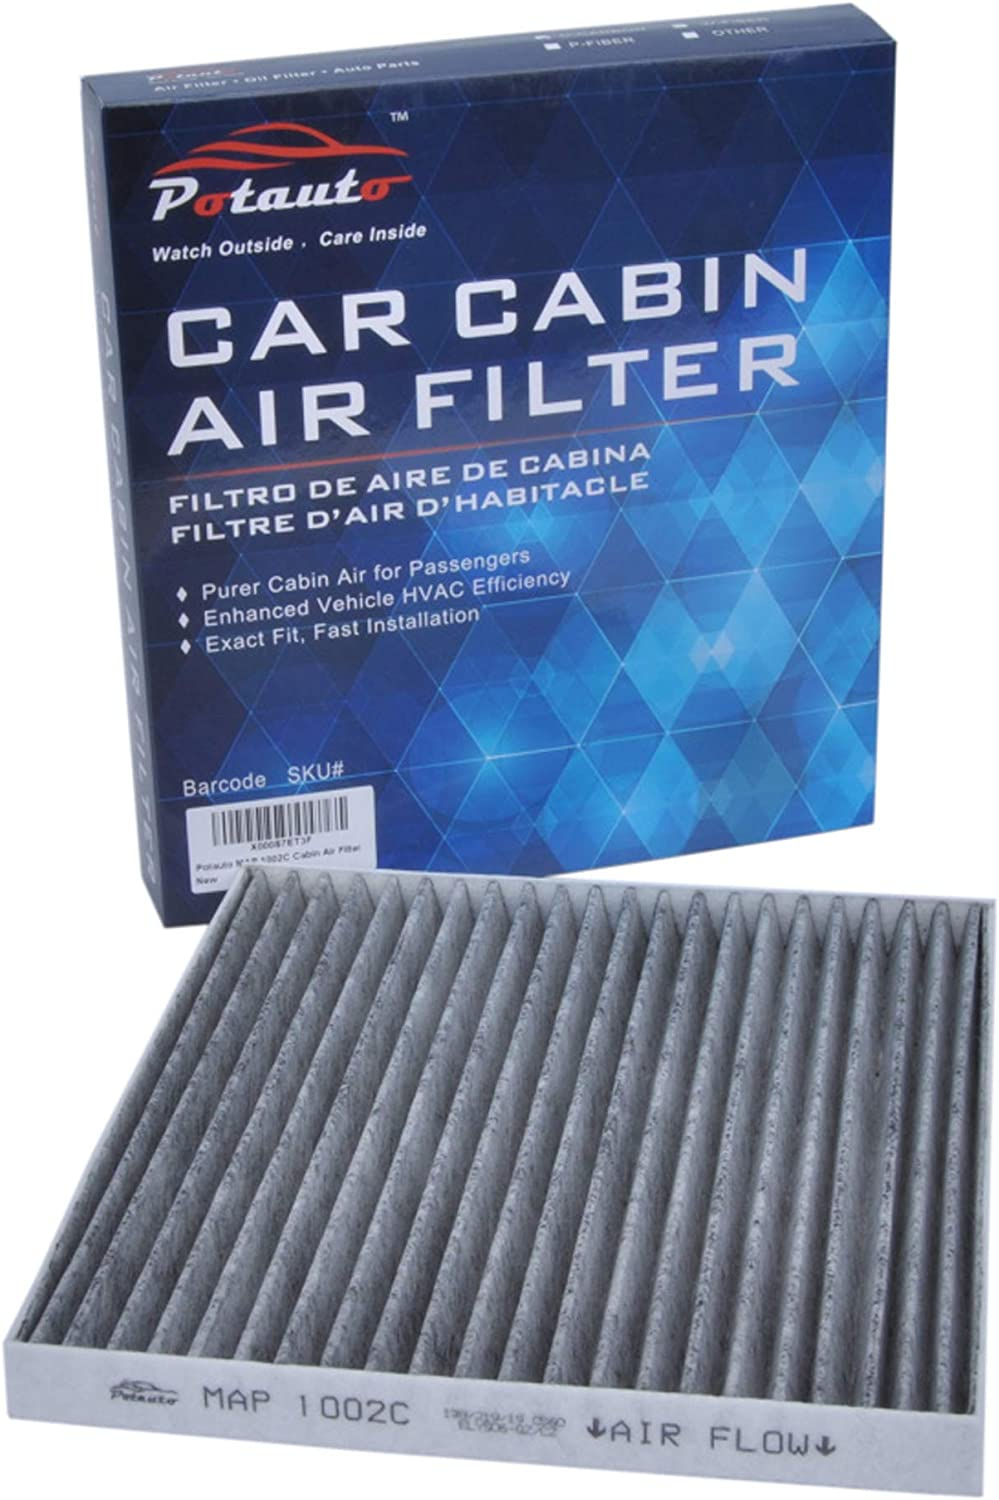 Filters Passenger Compartment Air Filters poslinemb.pl CF10133 ...